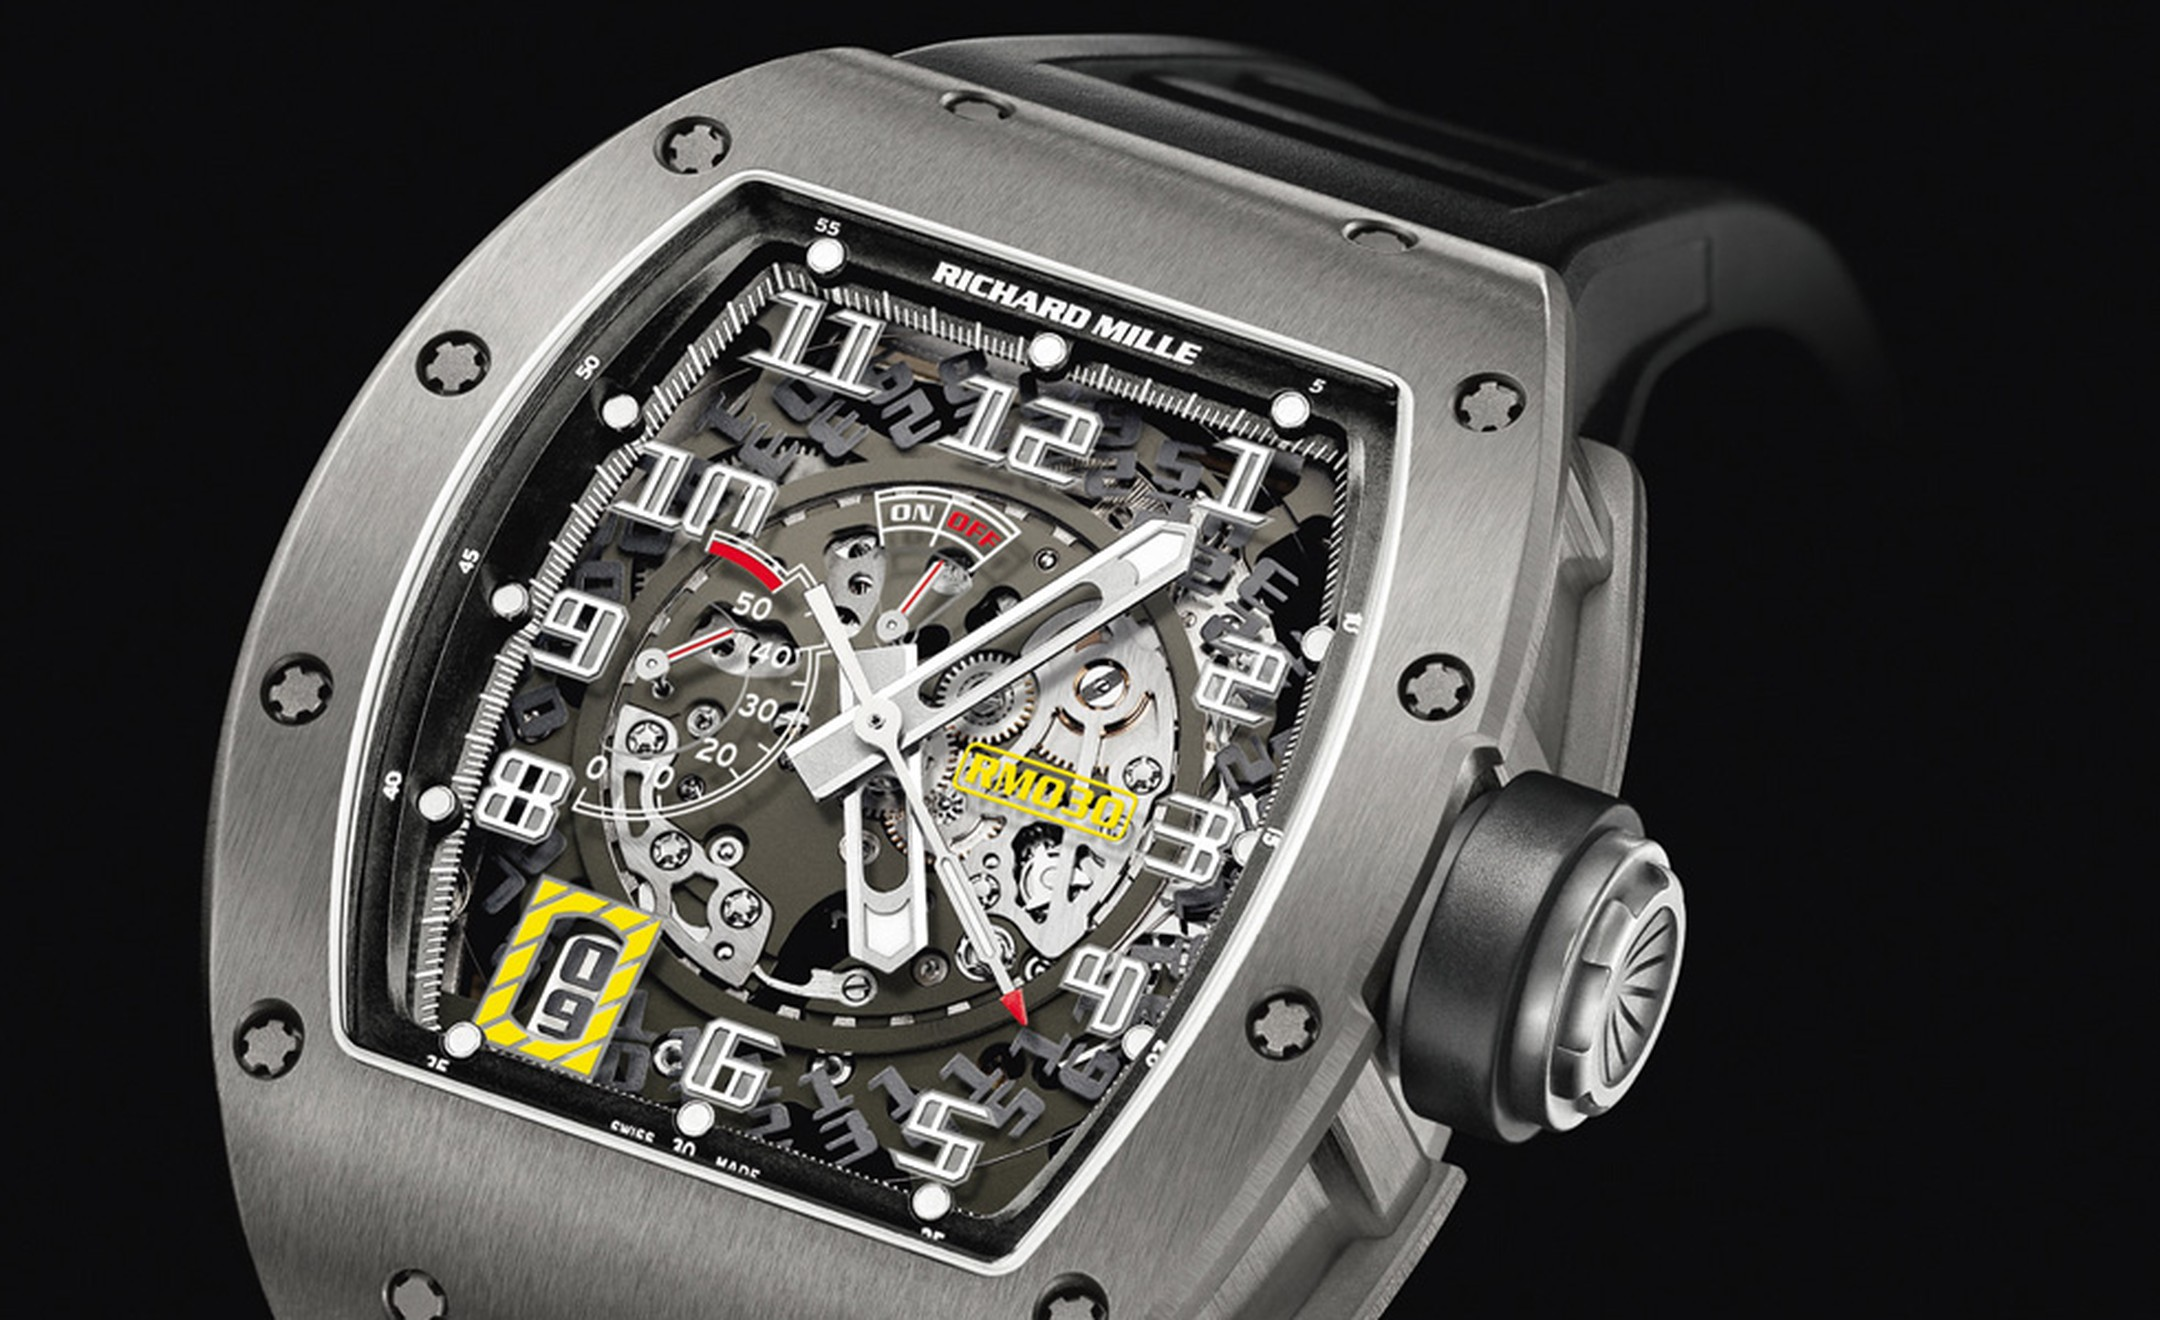 Richard Mille RM030 with declutchable rotor that prevents the watch overwinding